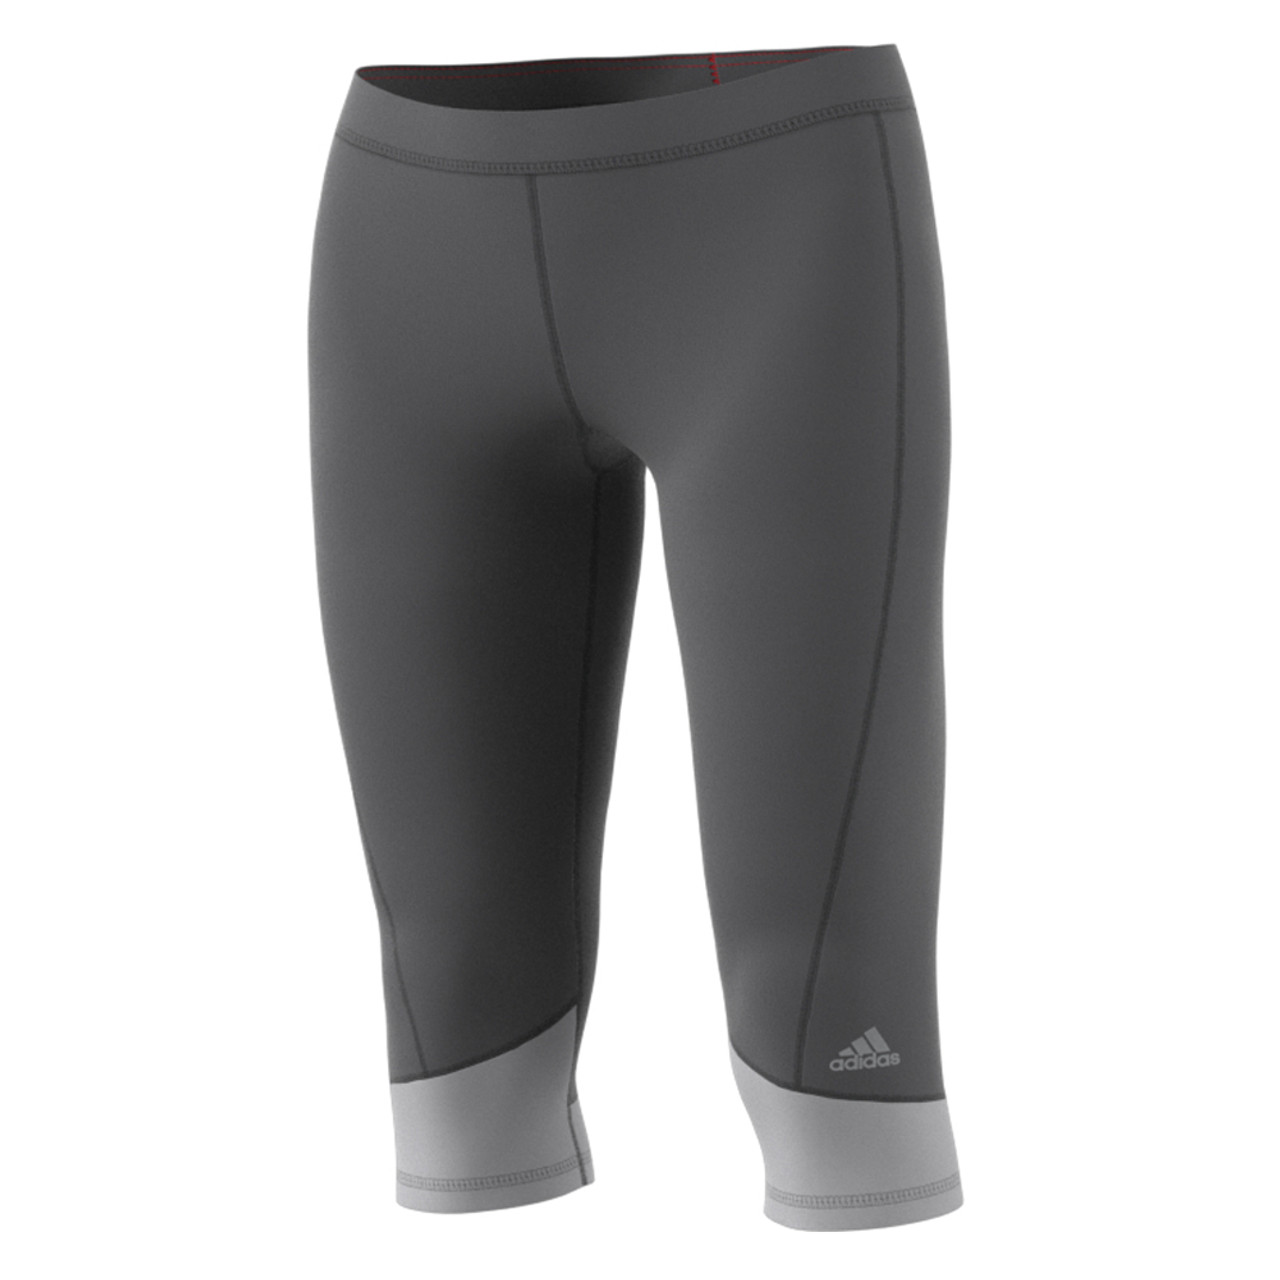 deb0885a4eb10 Adidas Women's Tech Fit Capri Pant - Grey | Discount Adidas Apparel ...